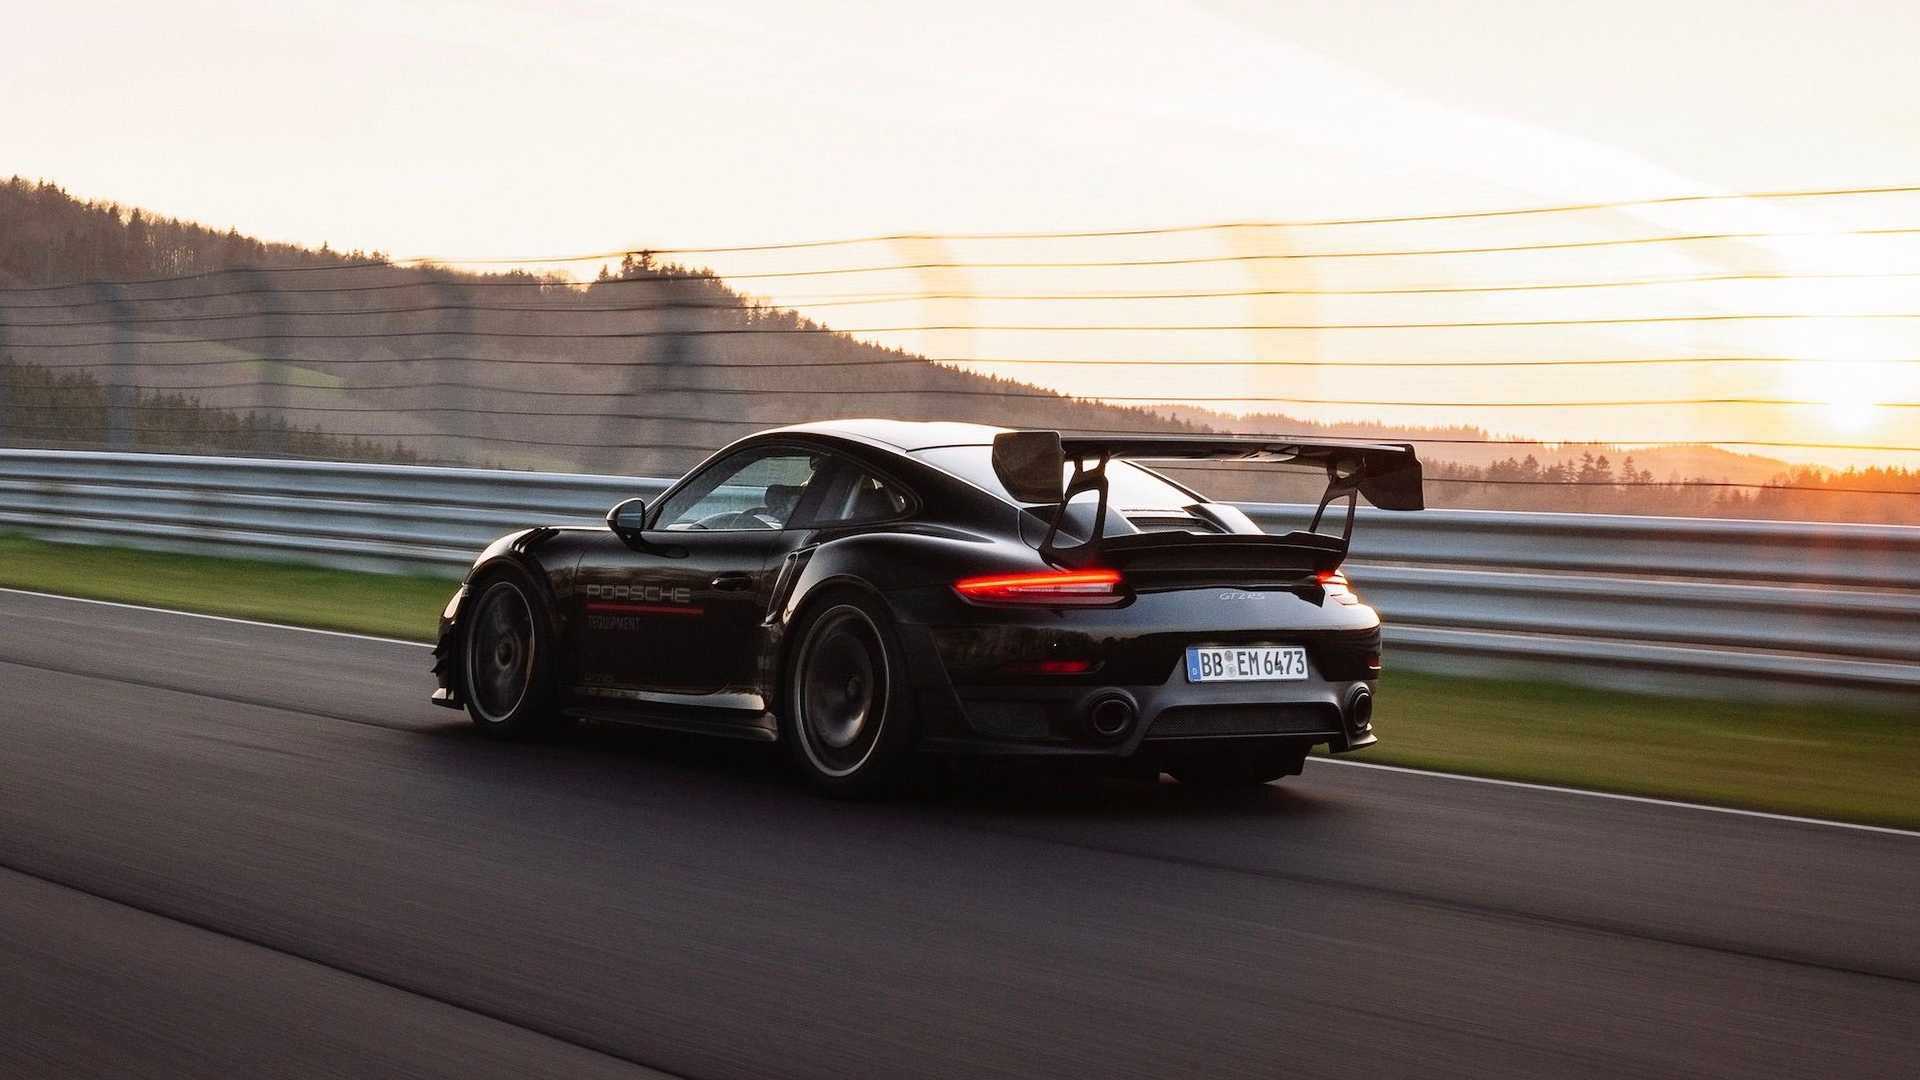 Porsche-911-GT2-RS-Manthey-Performance-Kit-Nurburgring-Record-23